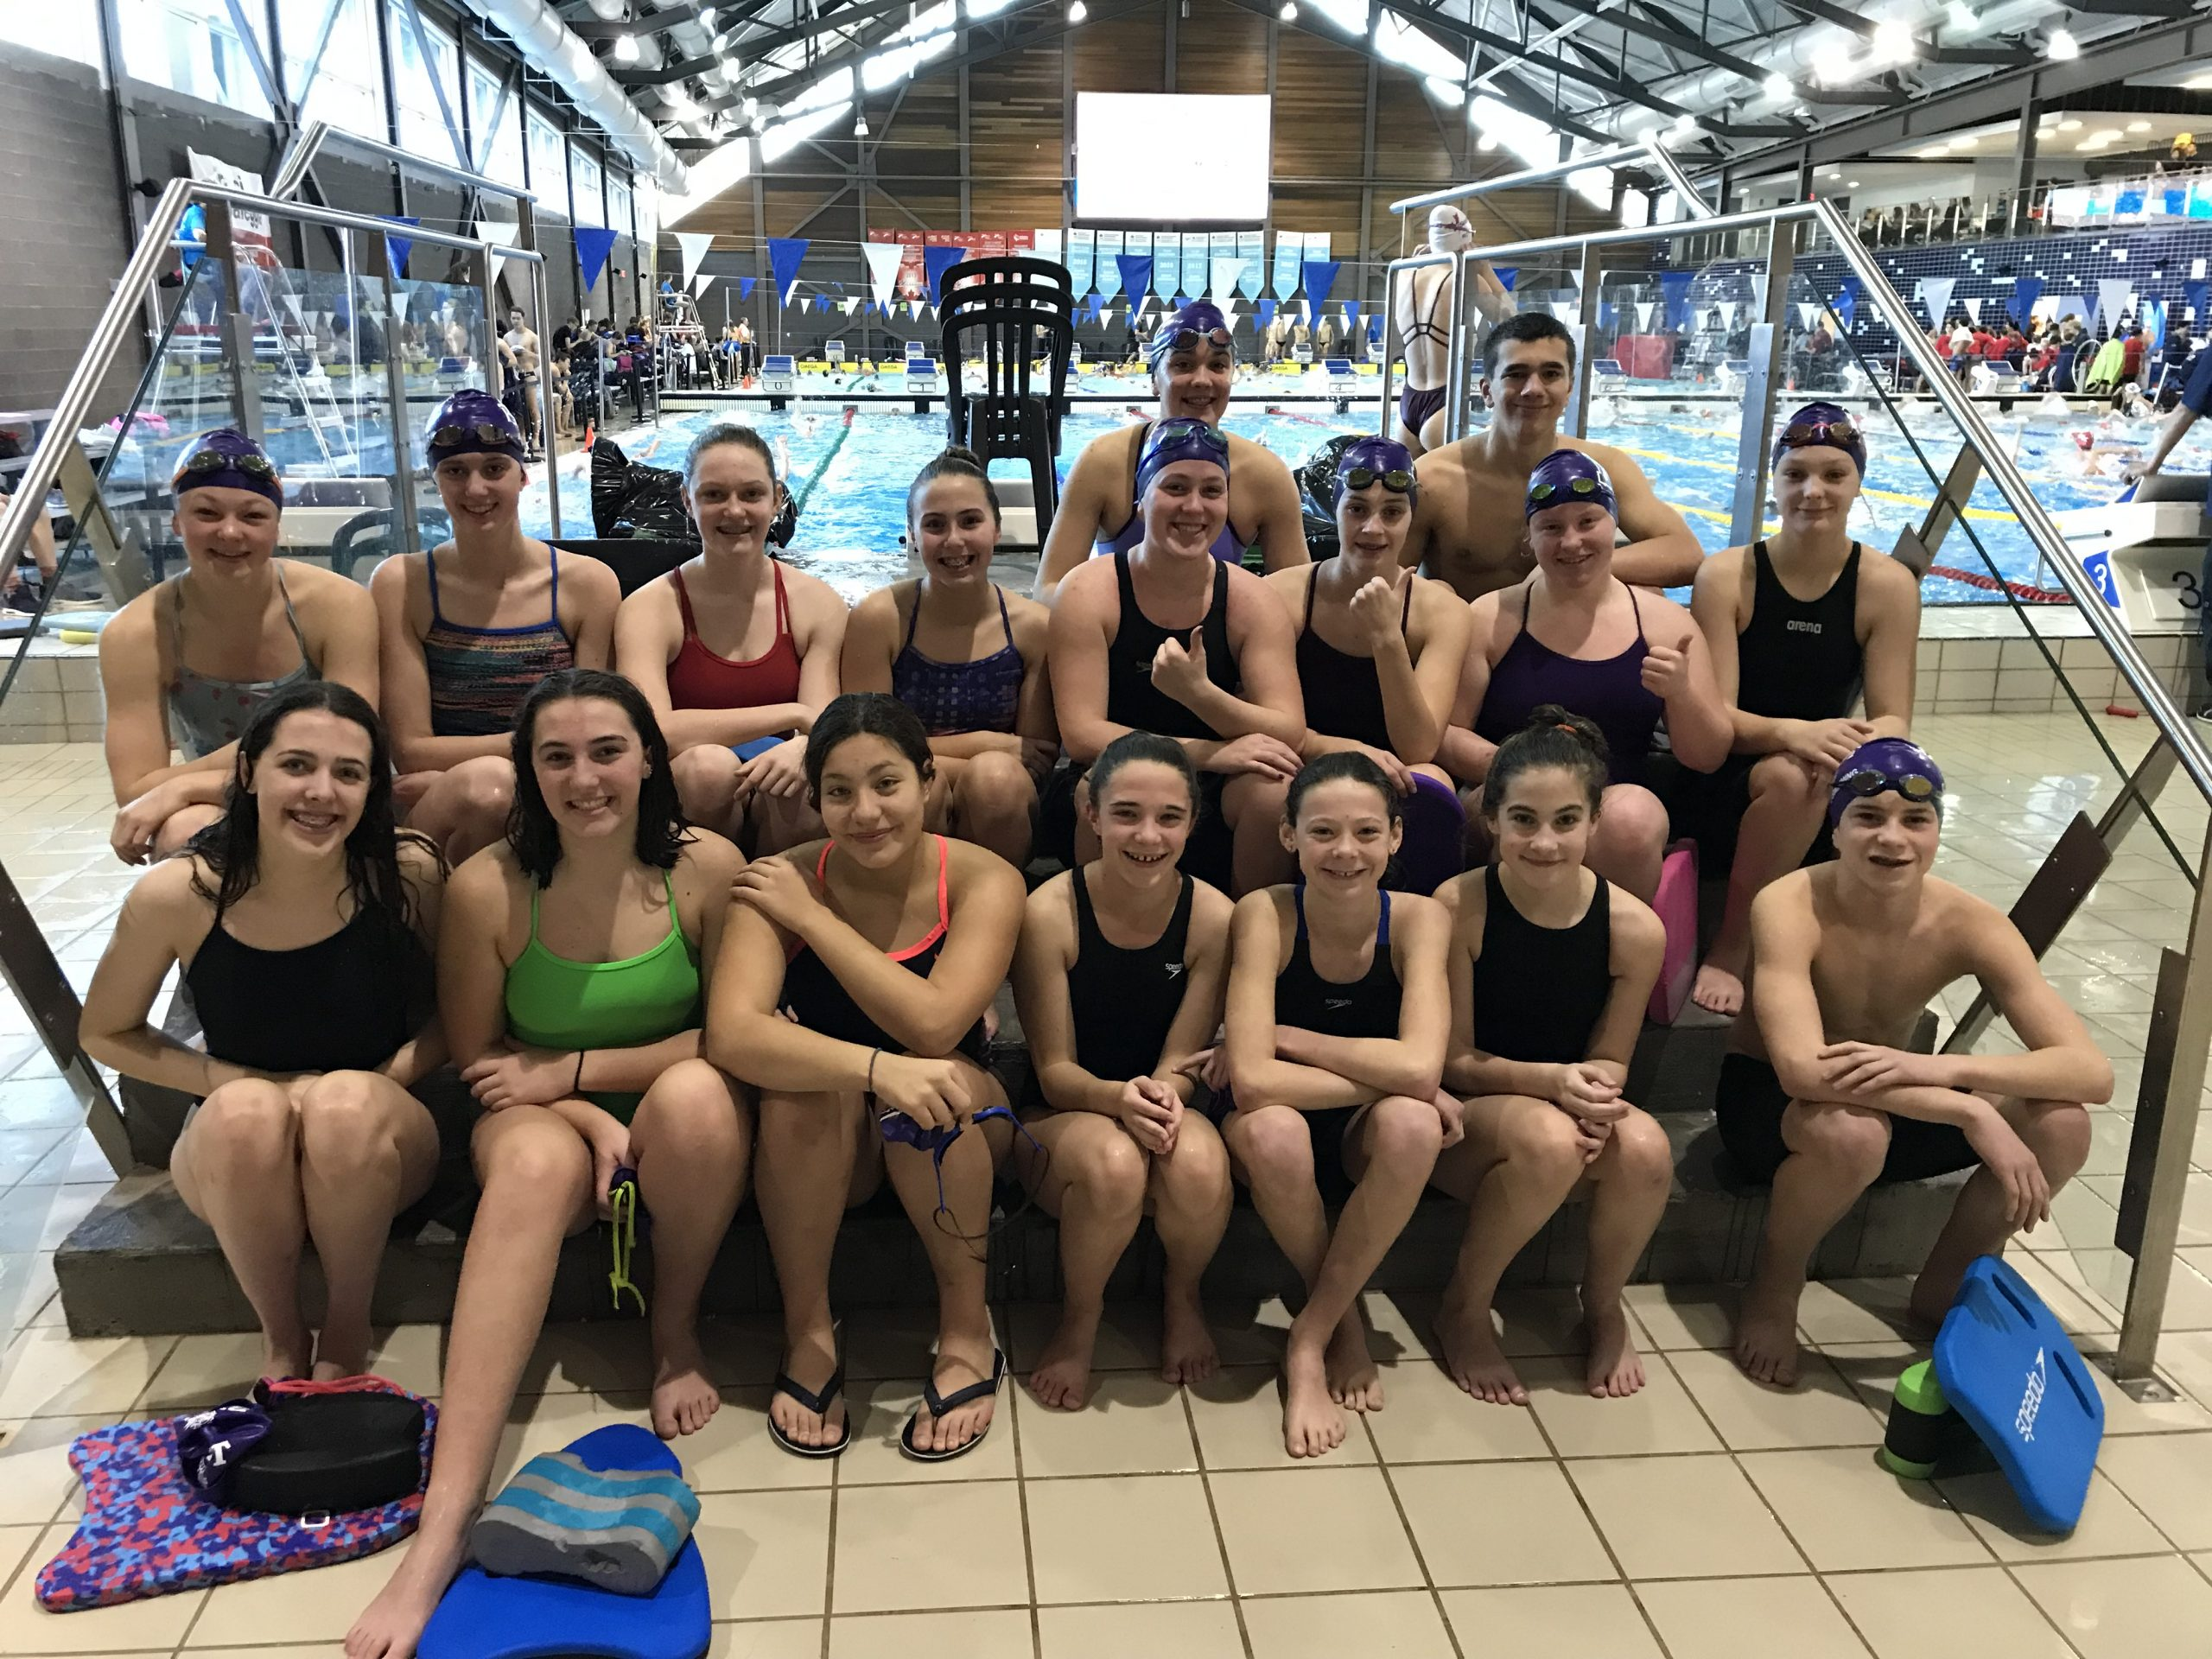 Belleville swimmers compete in Pointe Claire